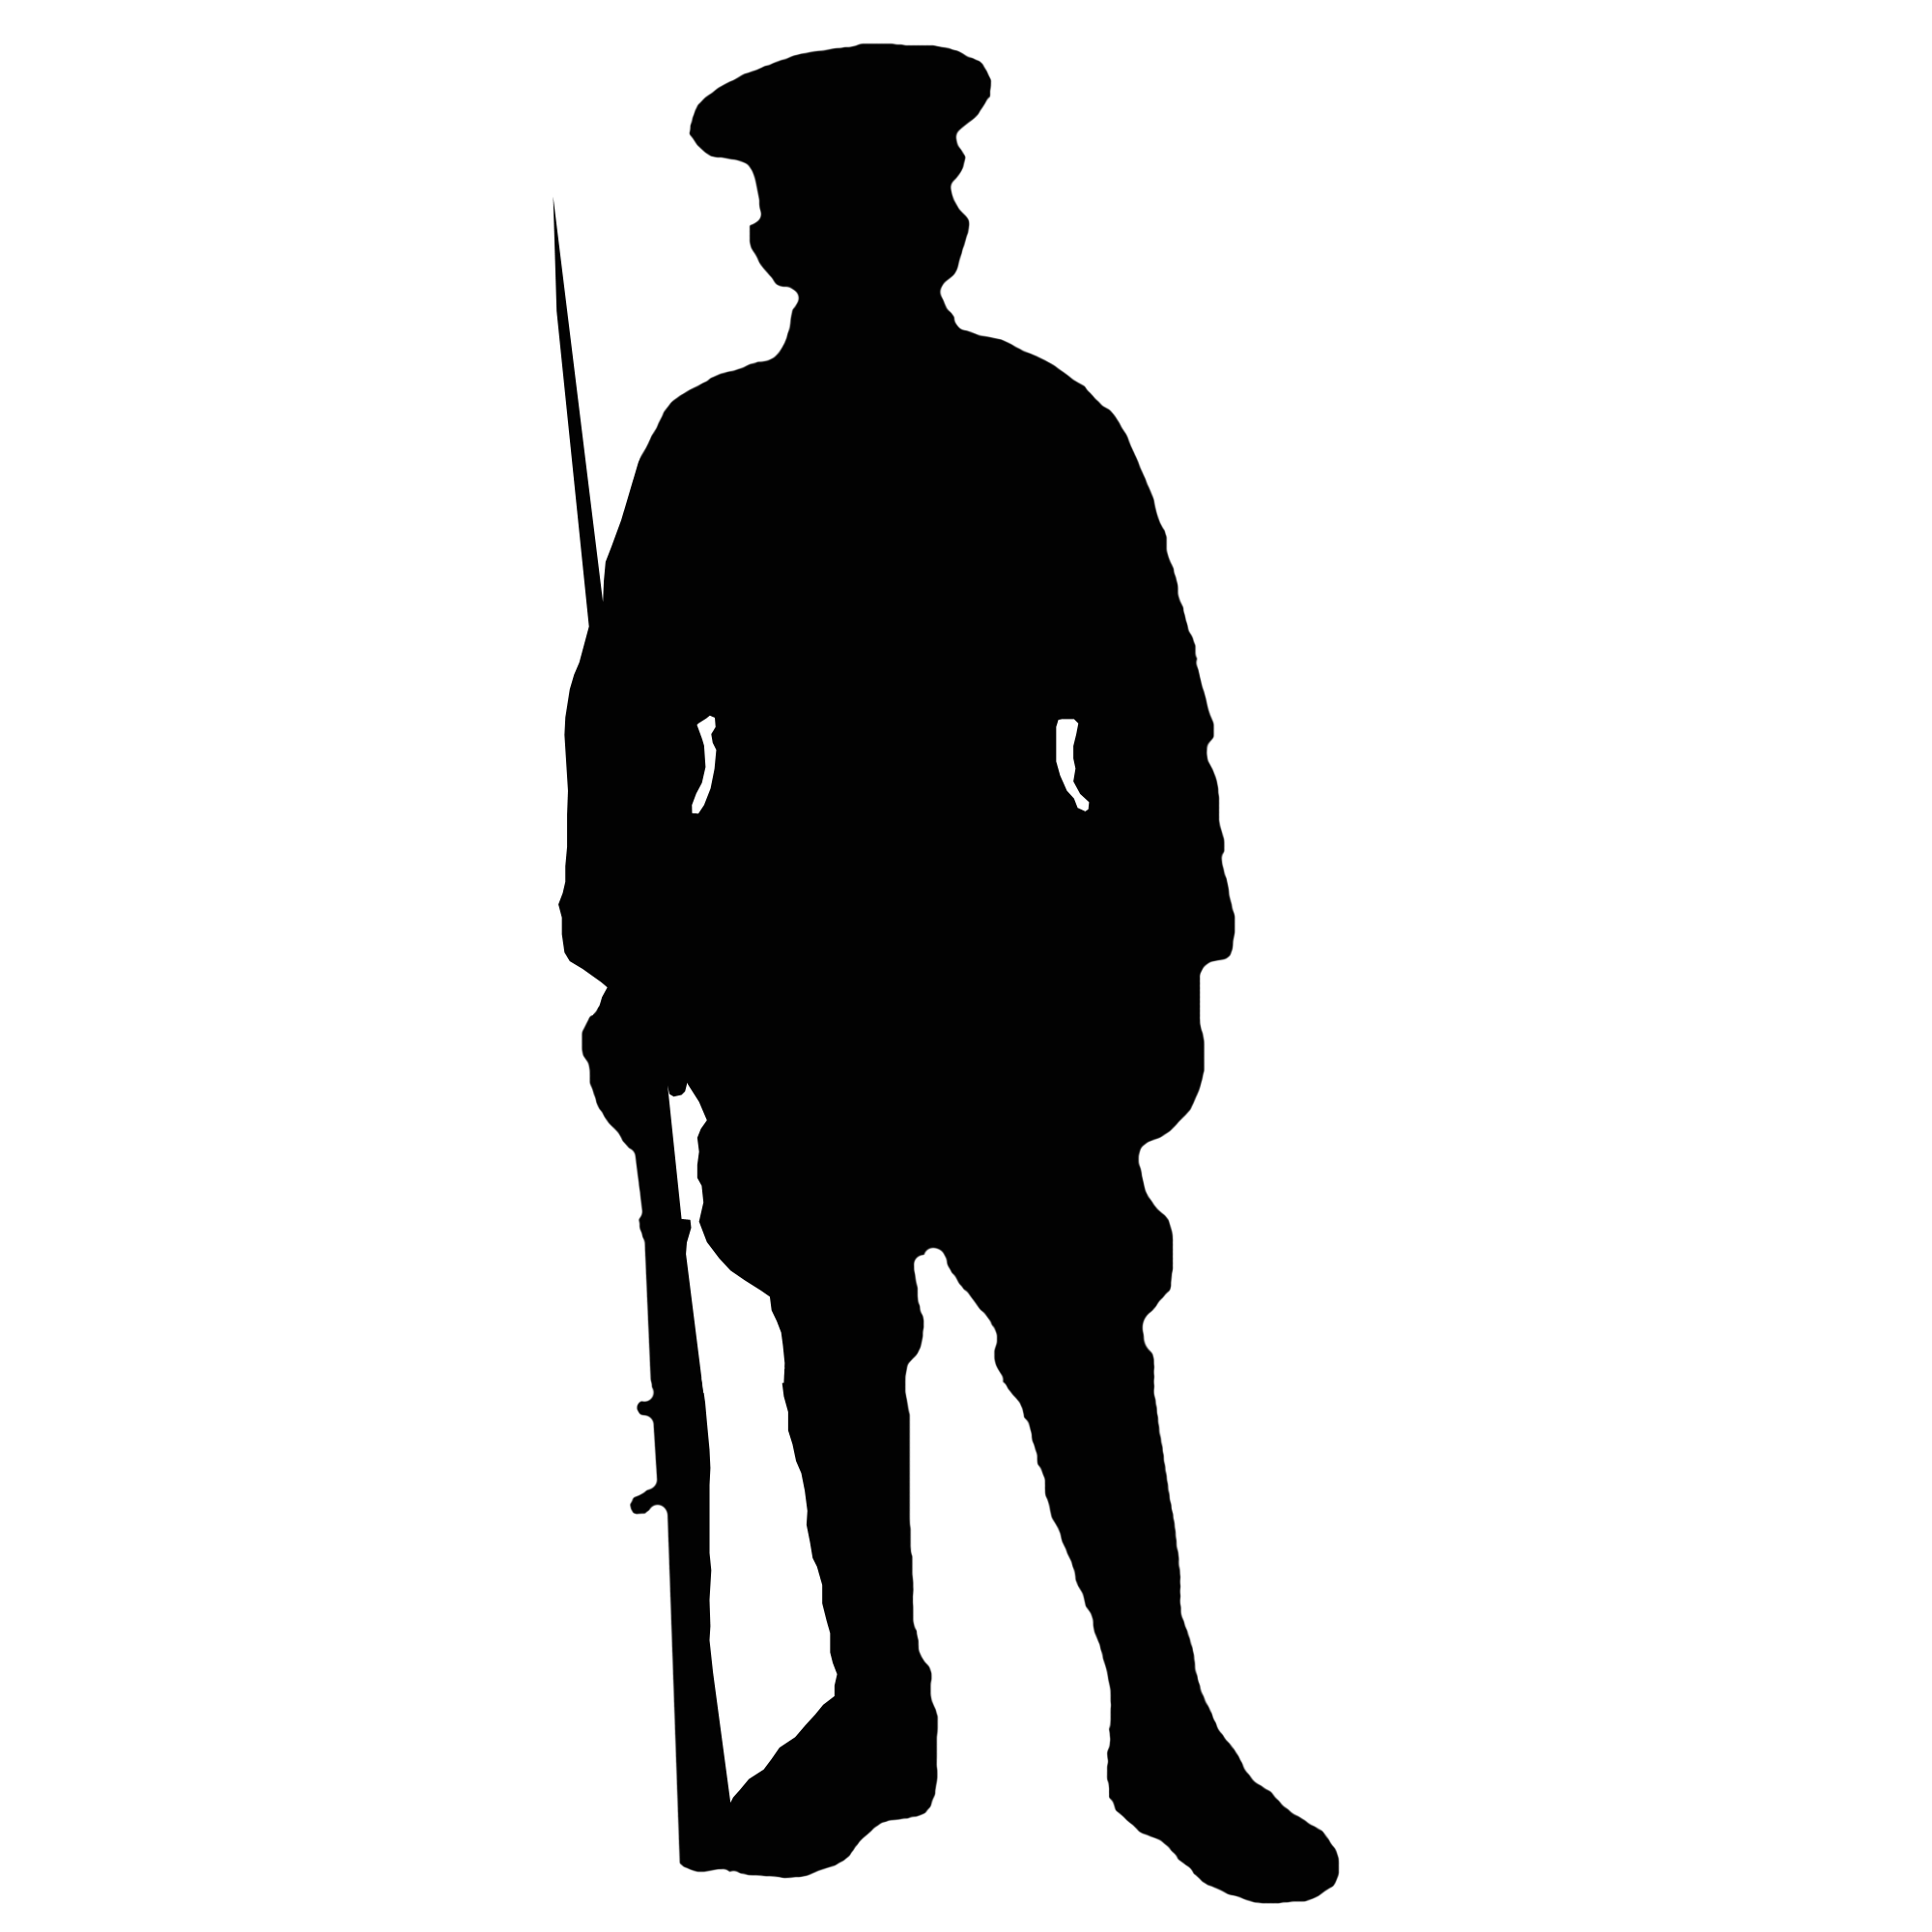 World war 1 png. Soldier silhouette at getdrawings